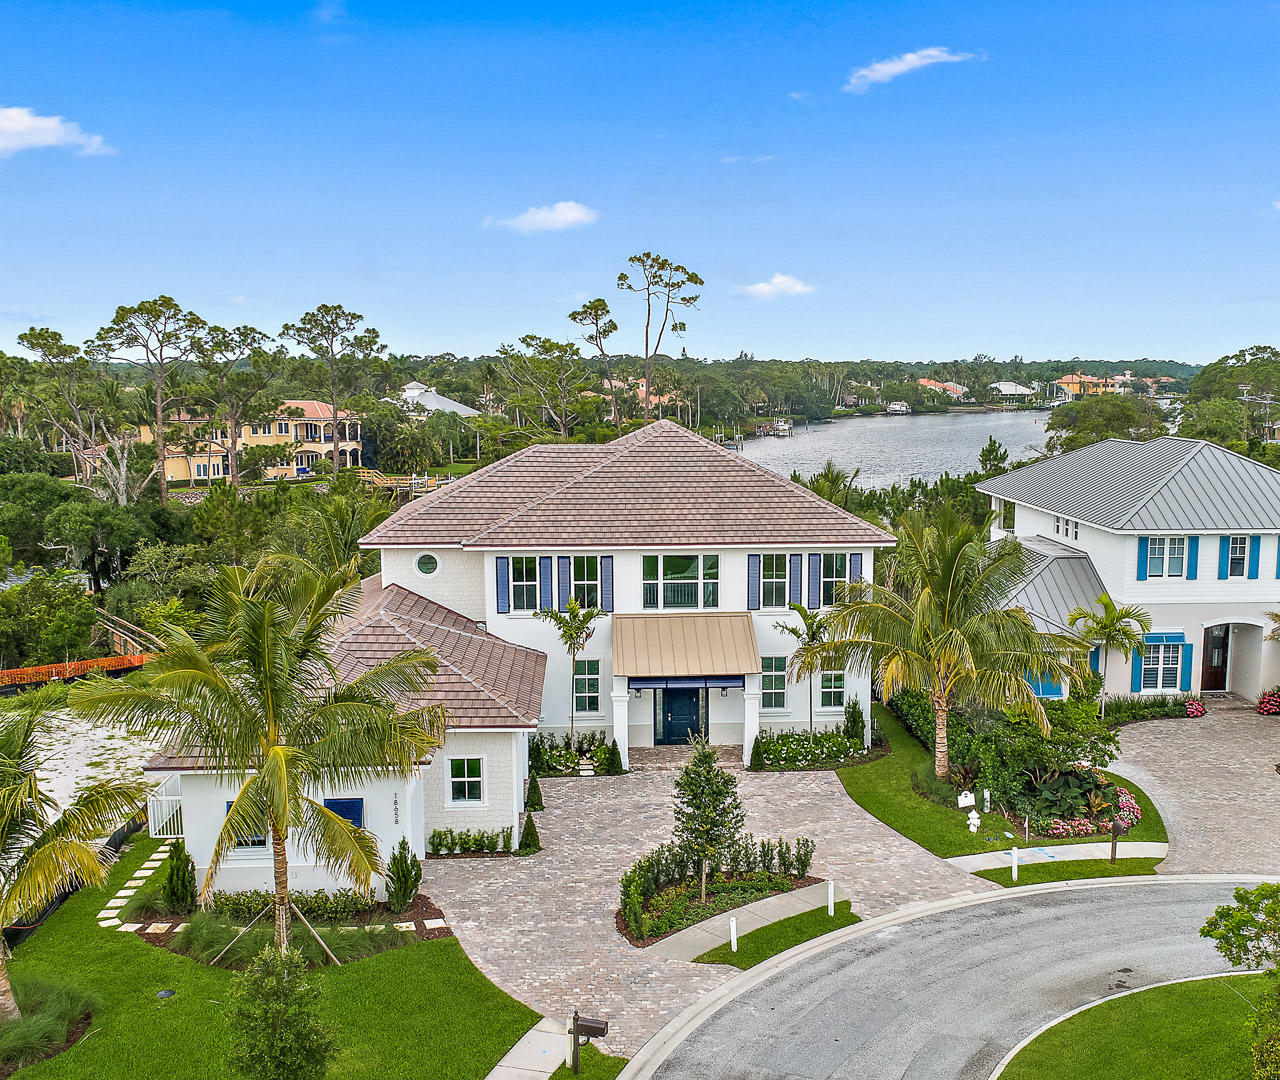 New Home for sale at 18658 St Augustine Way in Tequesta